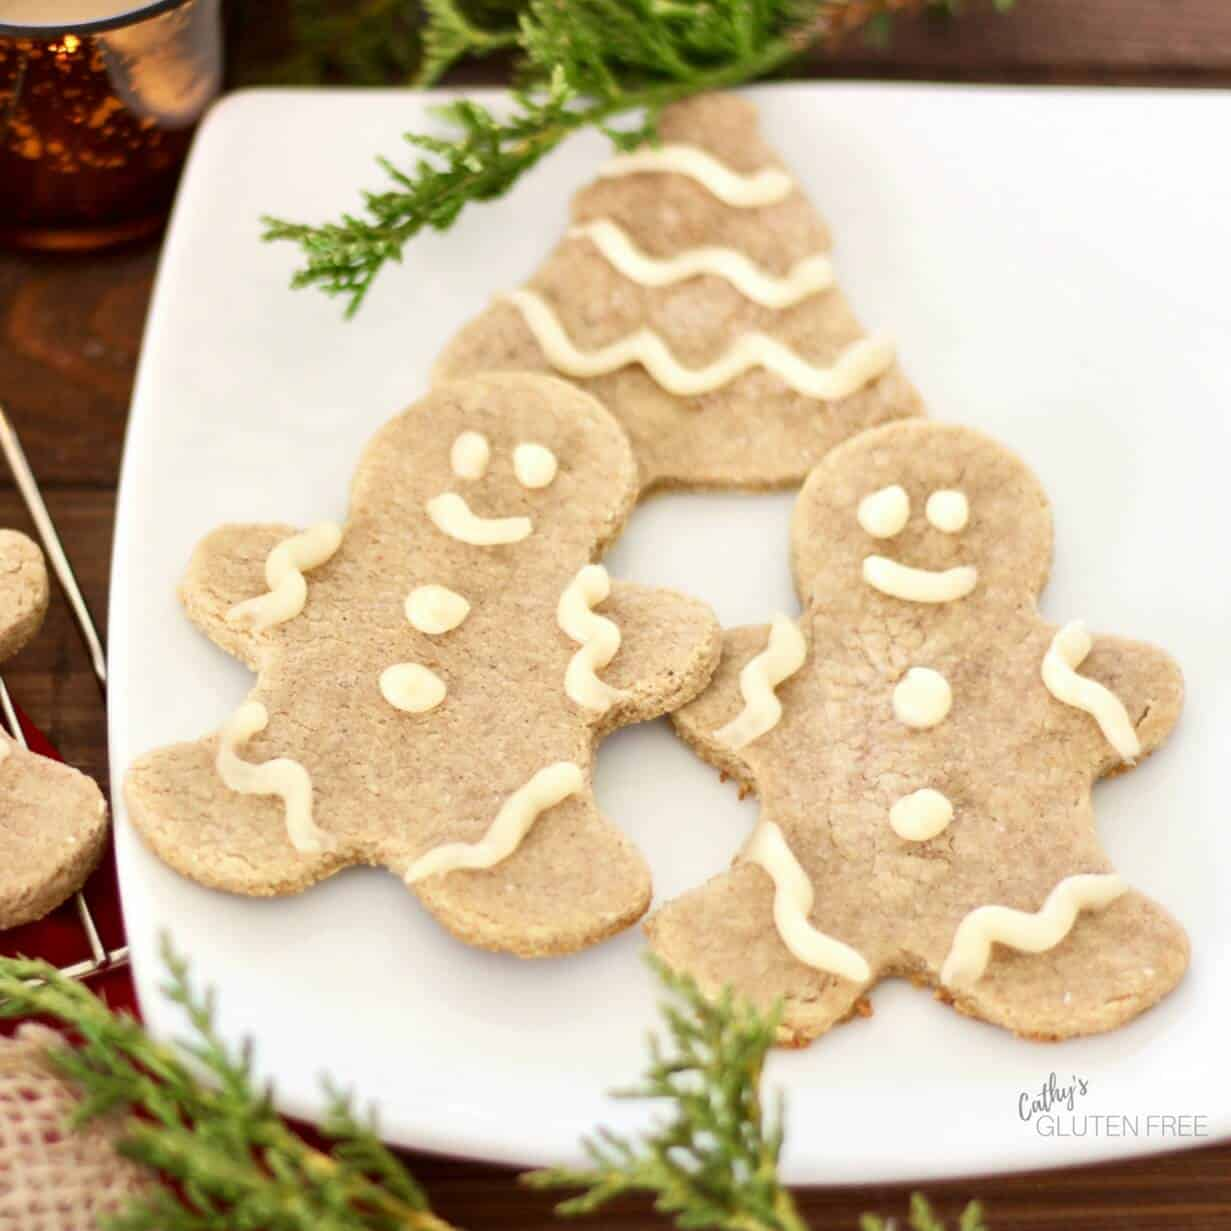 Grain Free Gingerbread Cookies | CathysGlutenFree.com